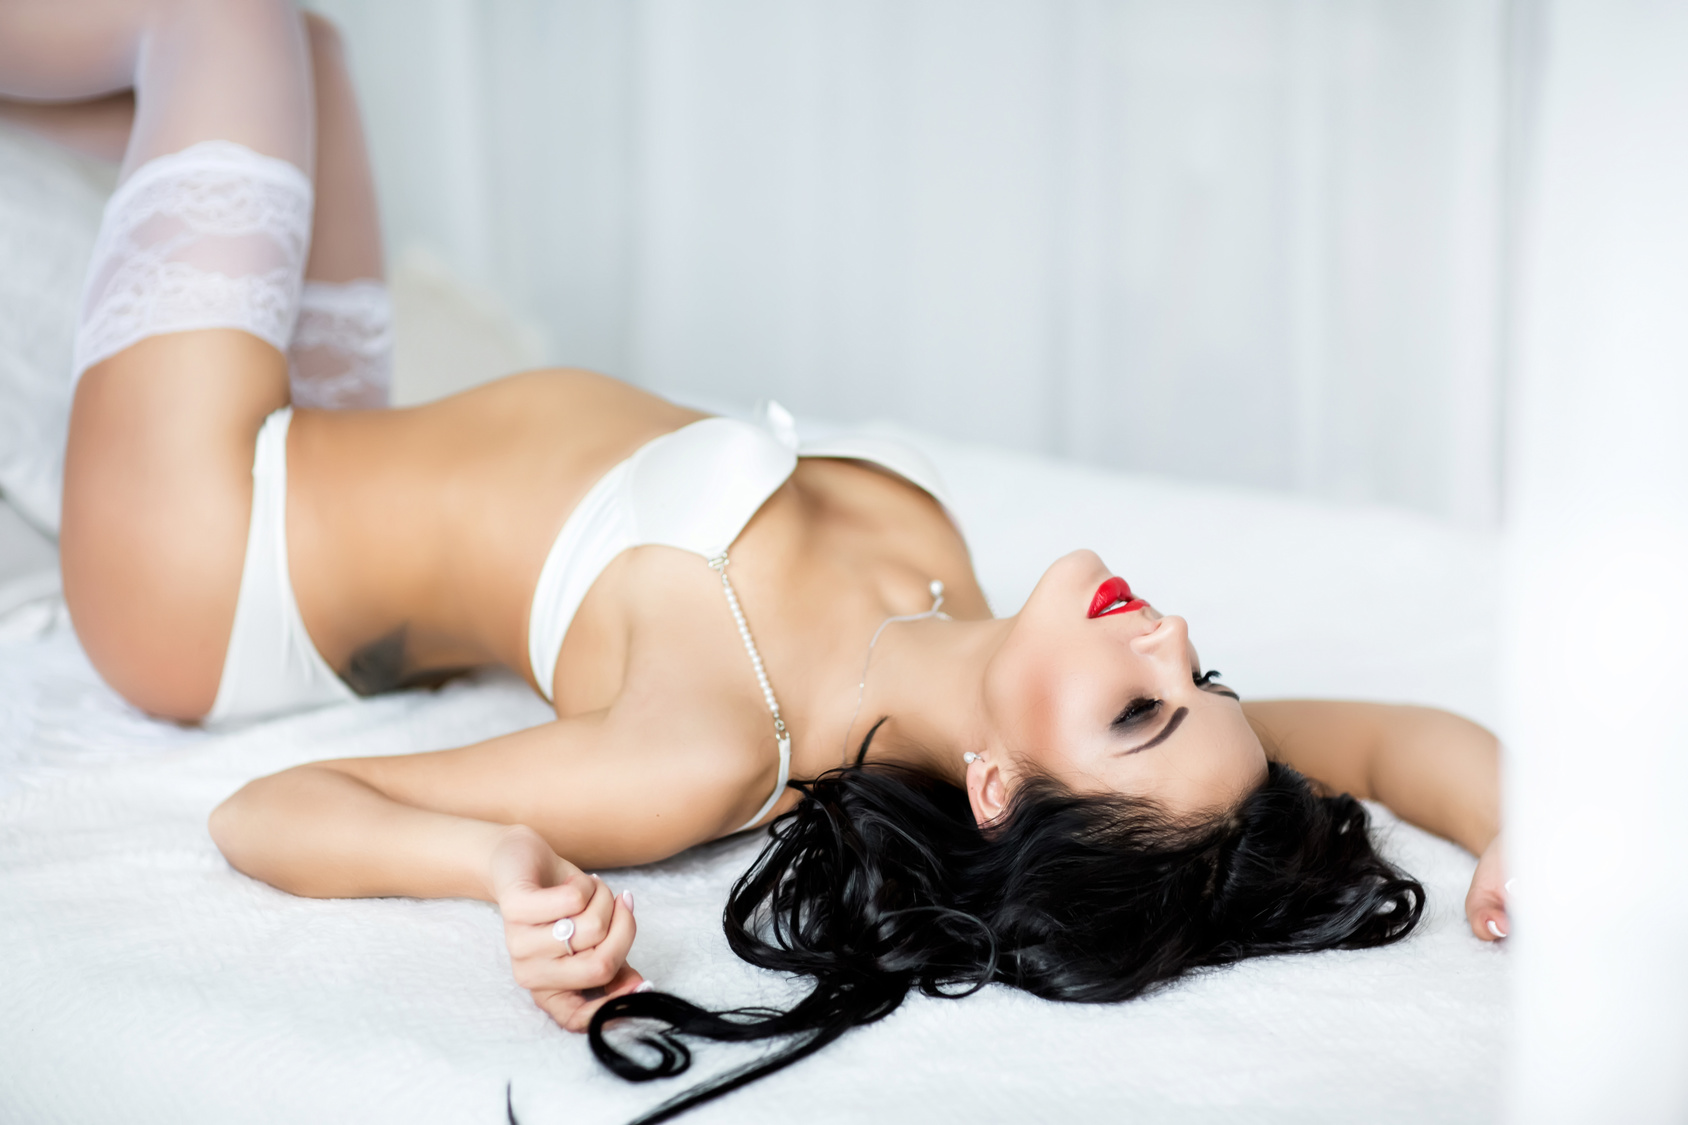 submissive escort prague erotic massage gdansk